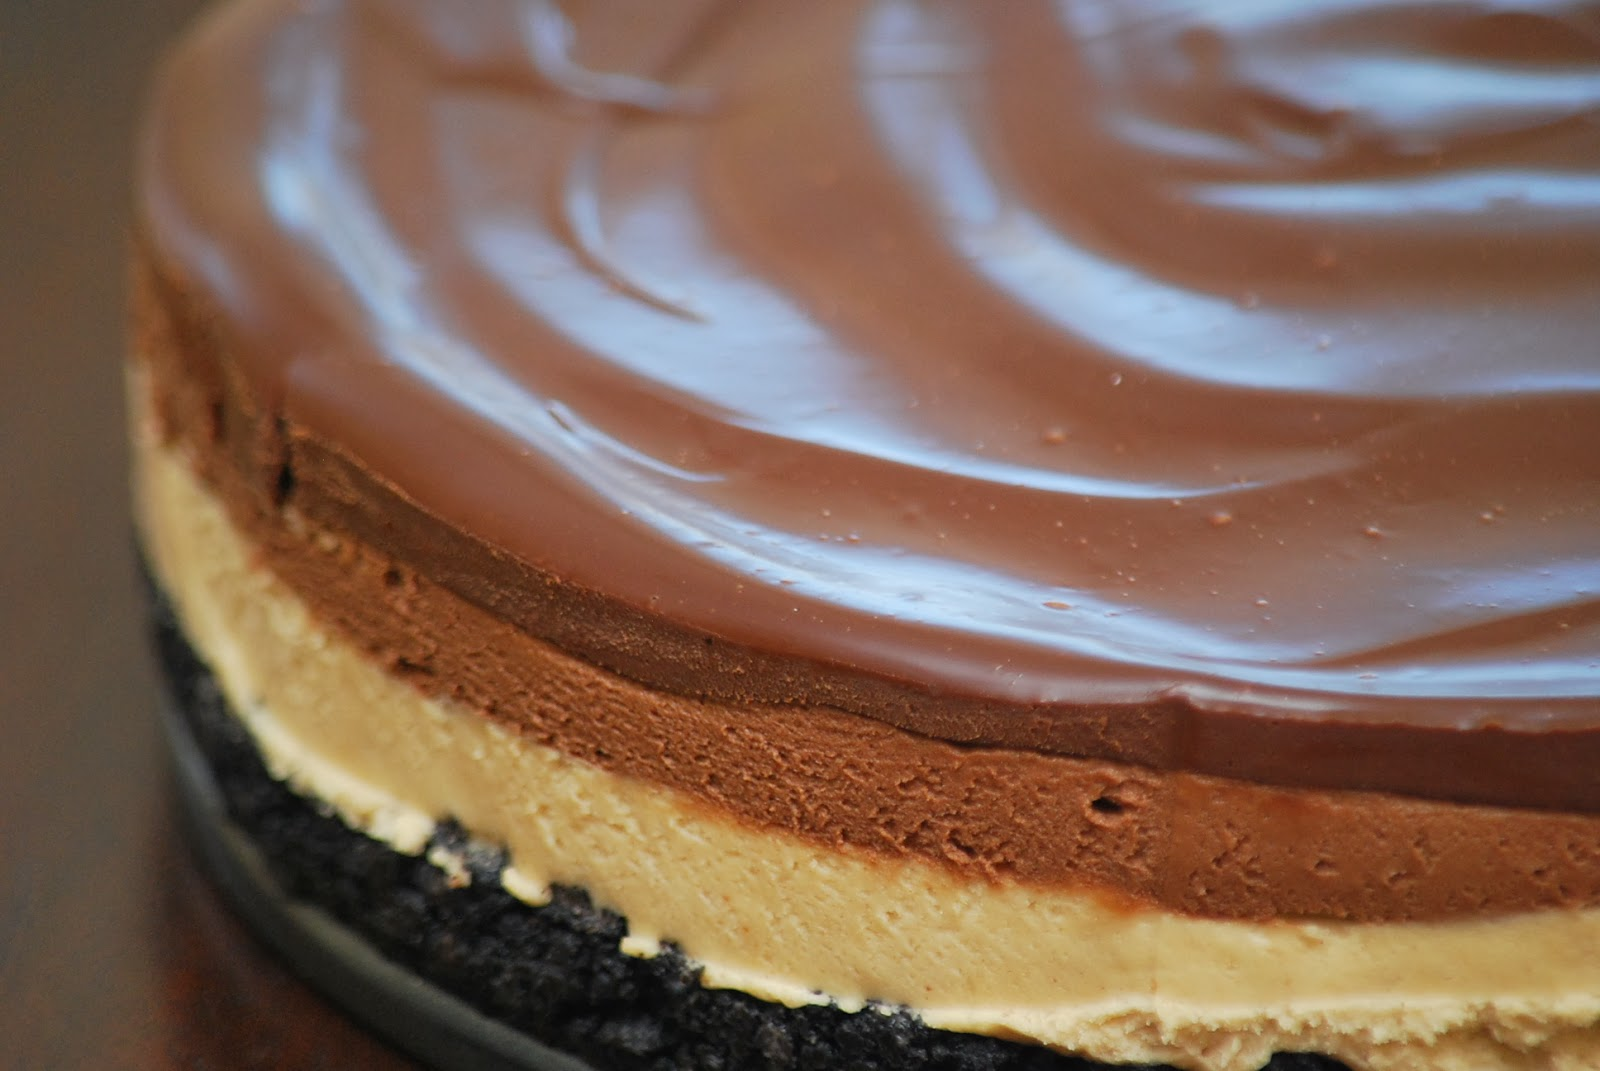 My story in recipes: Chocolate and Peanut Butter Mousse Cheesecake